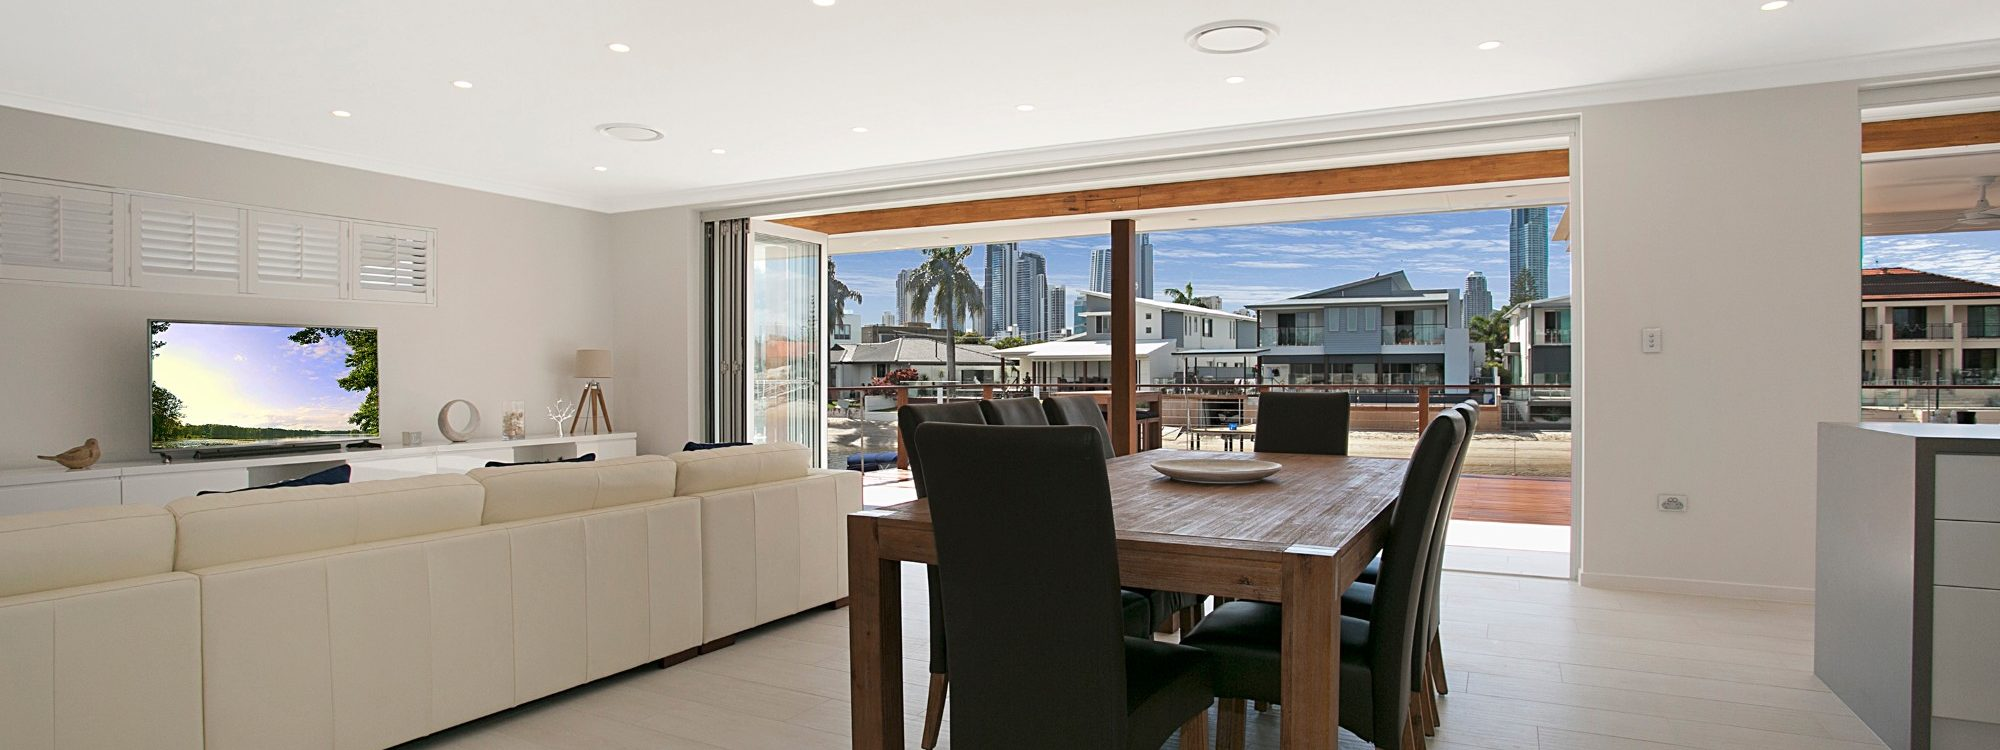 Capri Waters - Isle of Capri, Surfers Paradise - Dining area